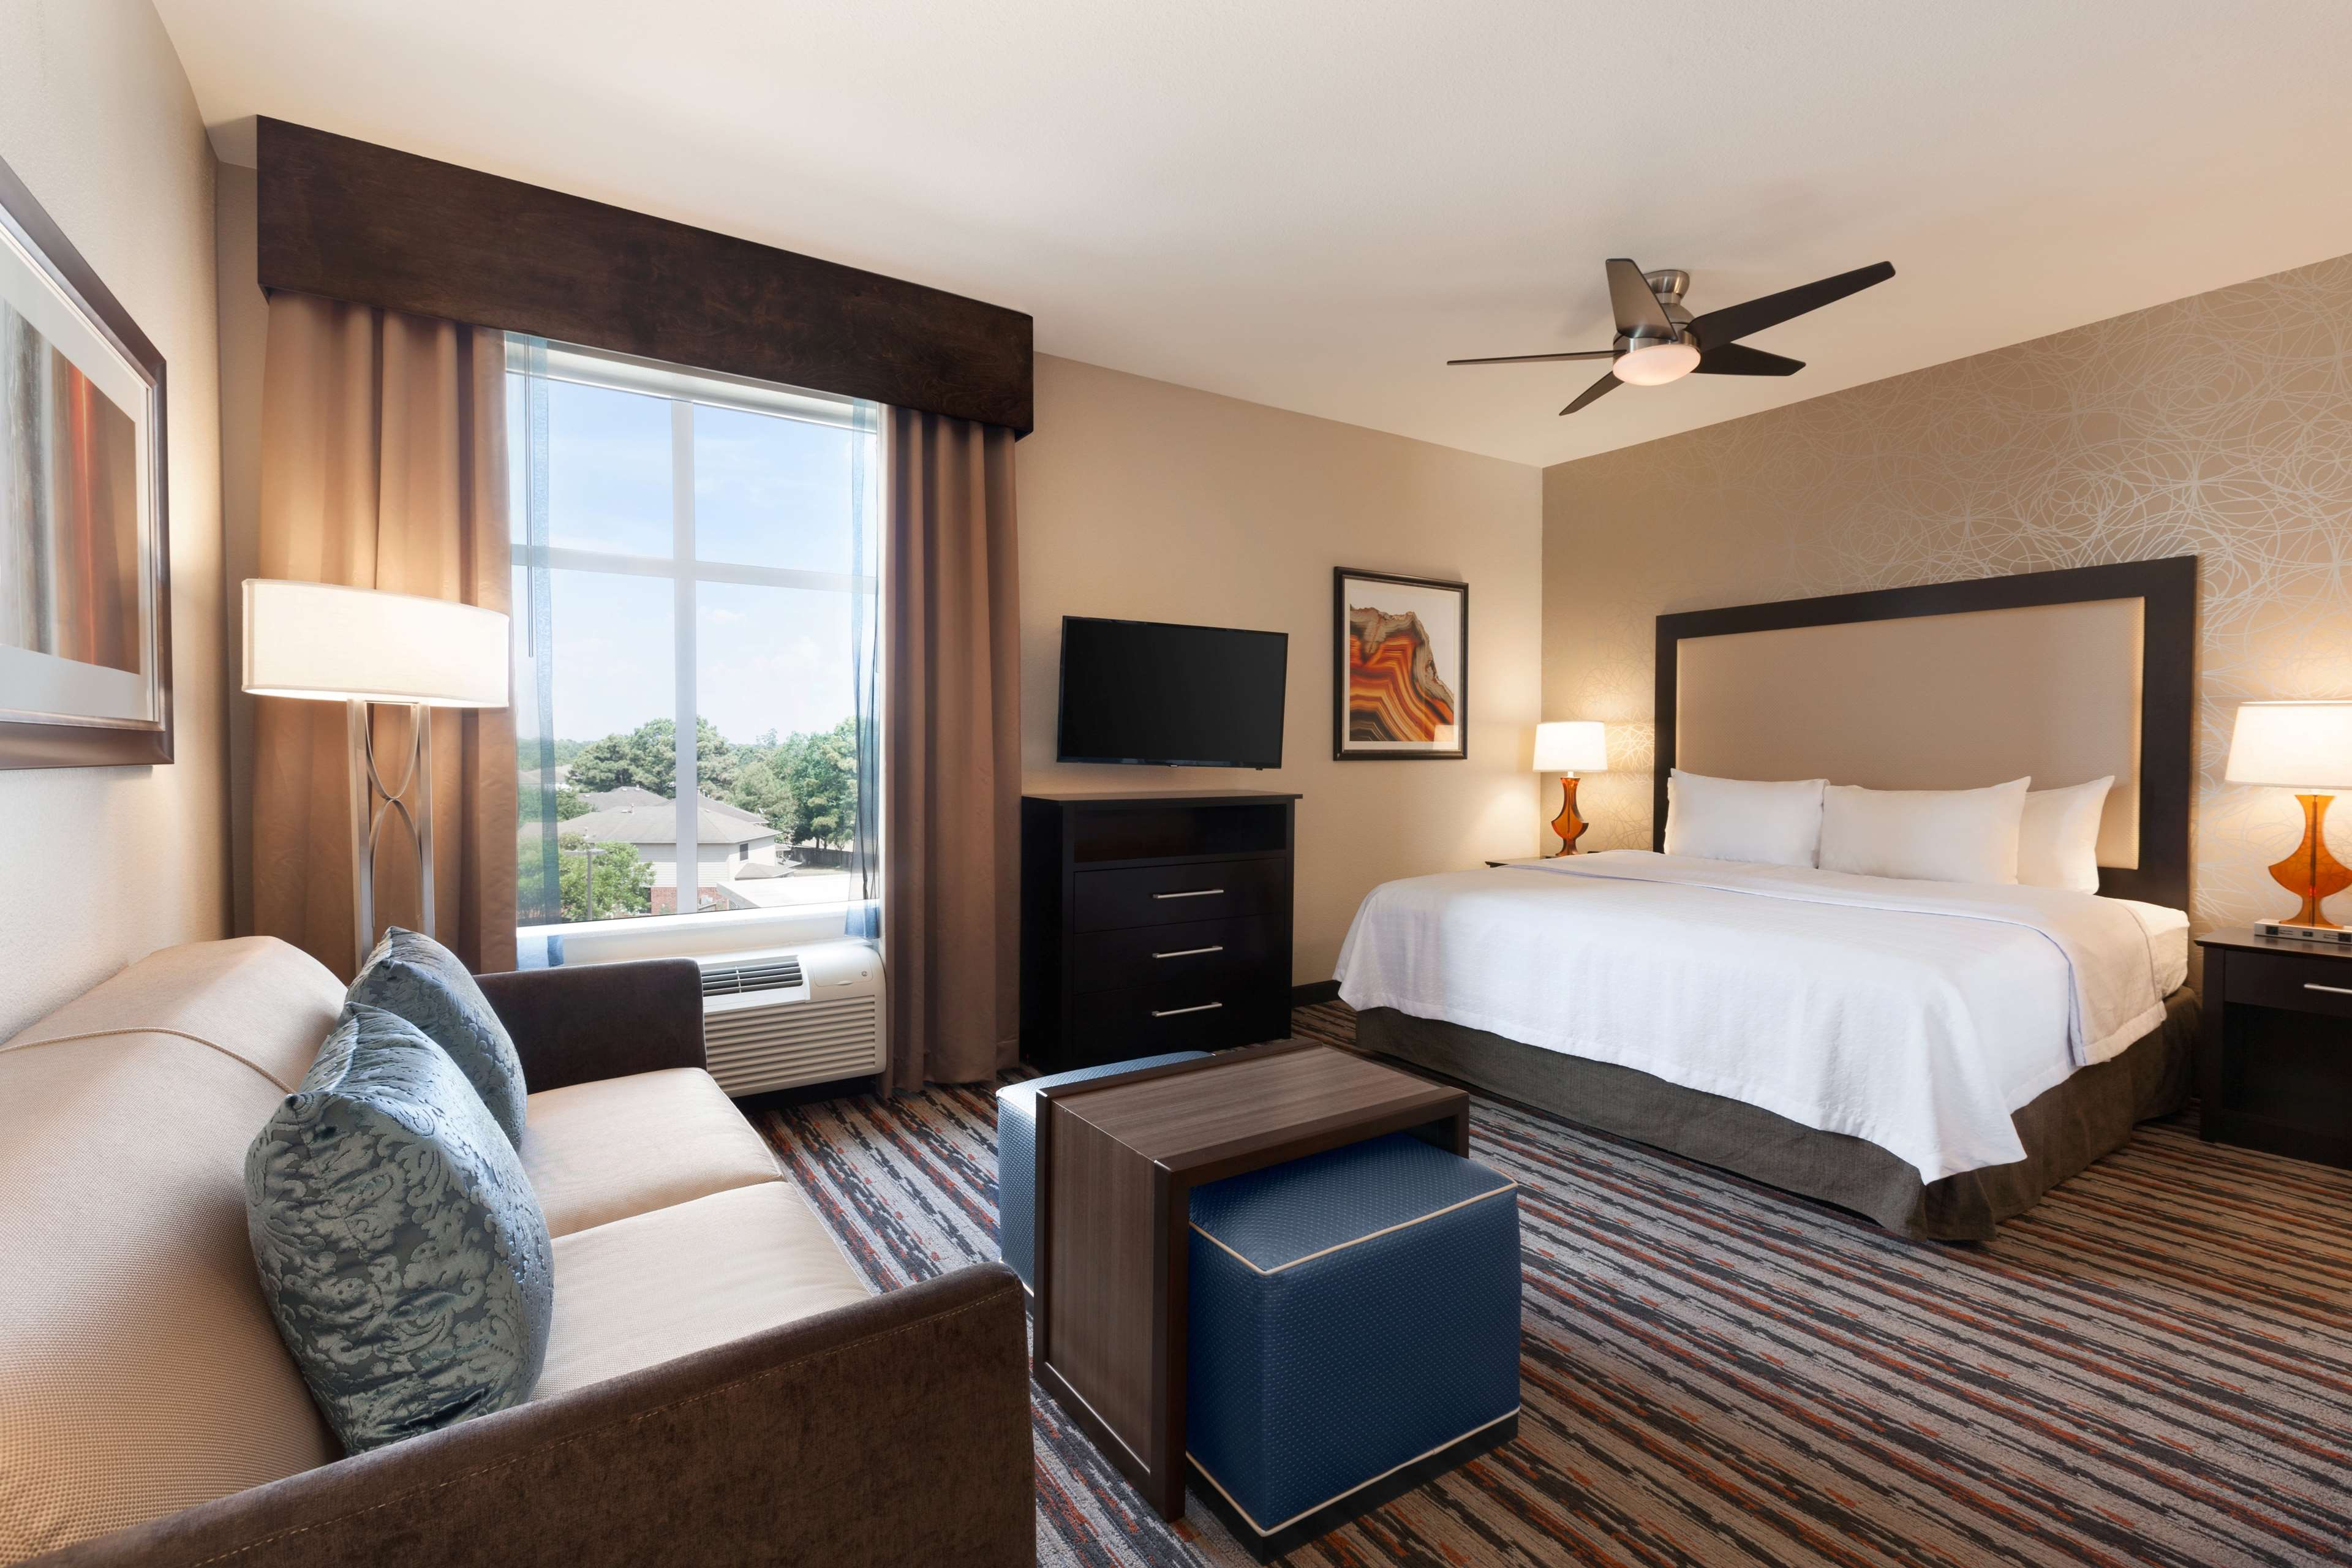 Homewood Suites by Hilton North Houston/Spring image 22